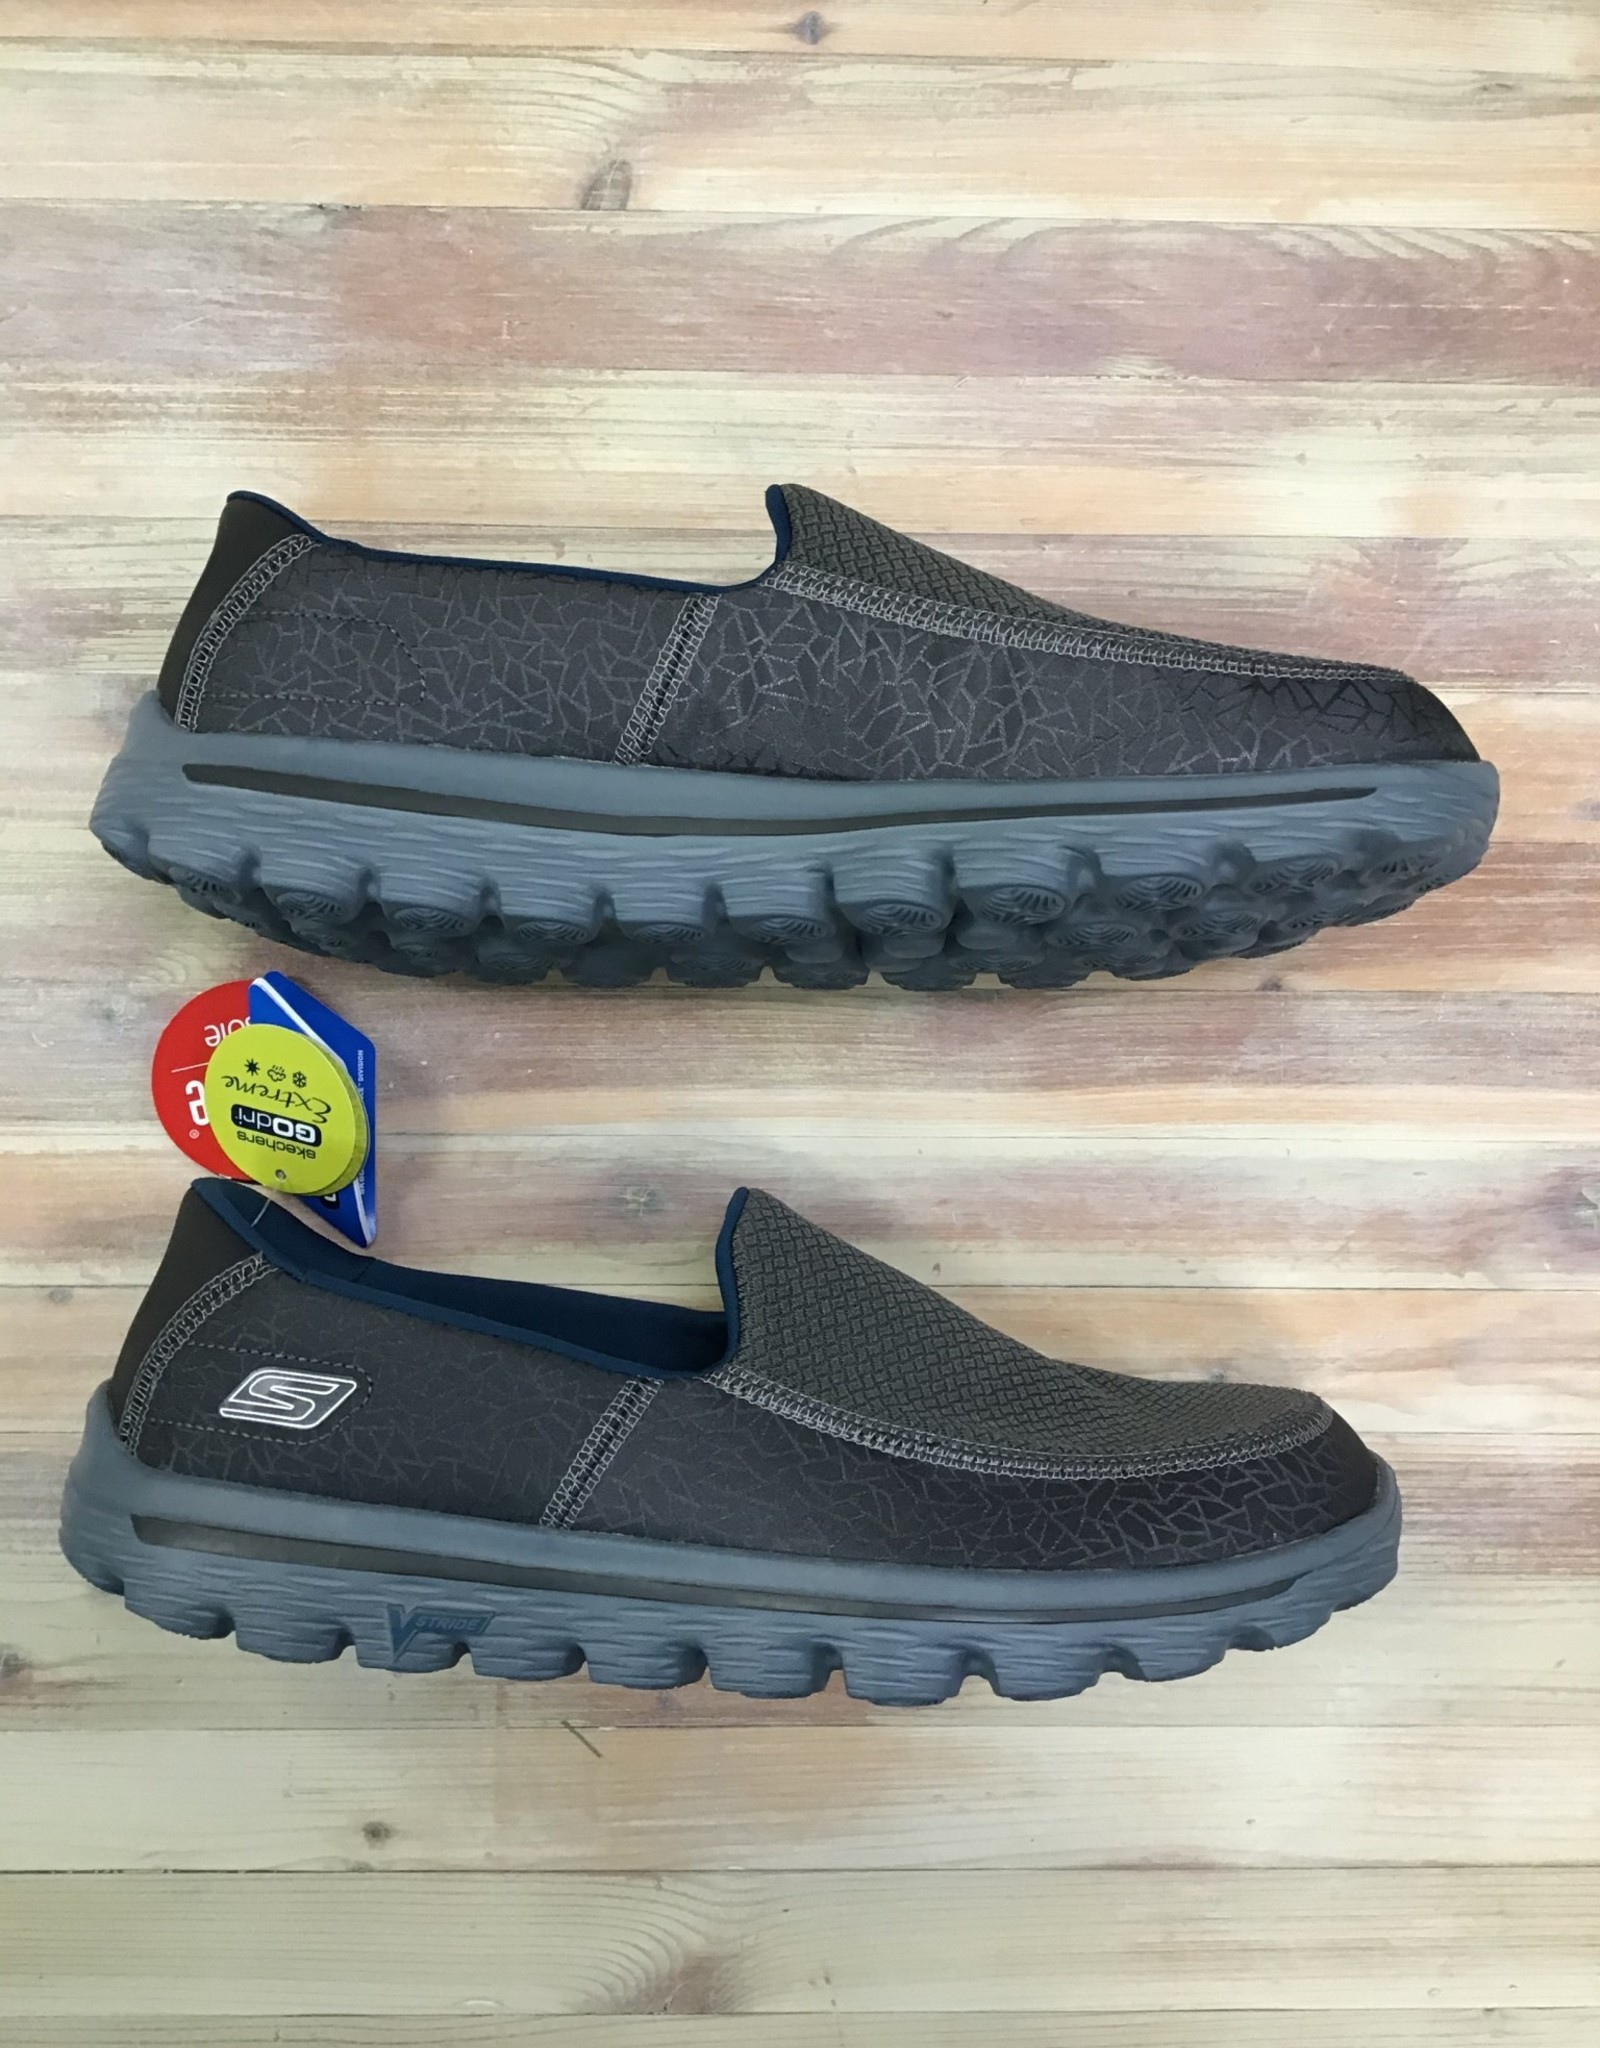 Skechers Skechers Go Walk 2 Extreme Men's